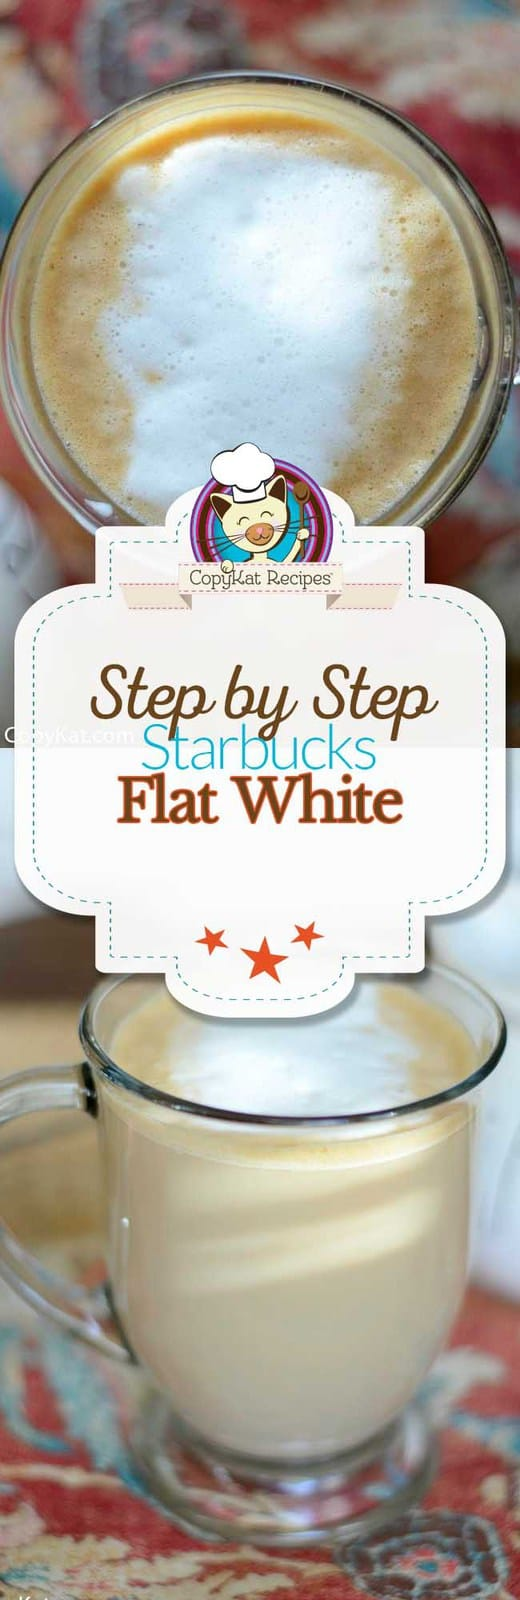 Make your own delicious copycat Starbucks Flat White with this step by step recipe.